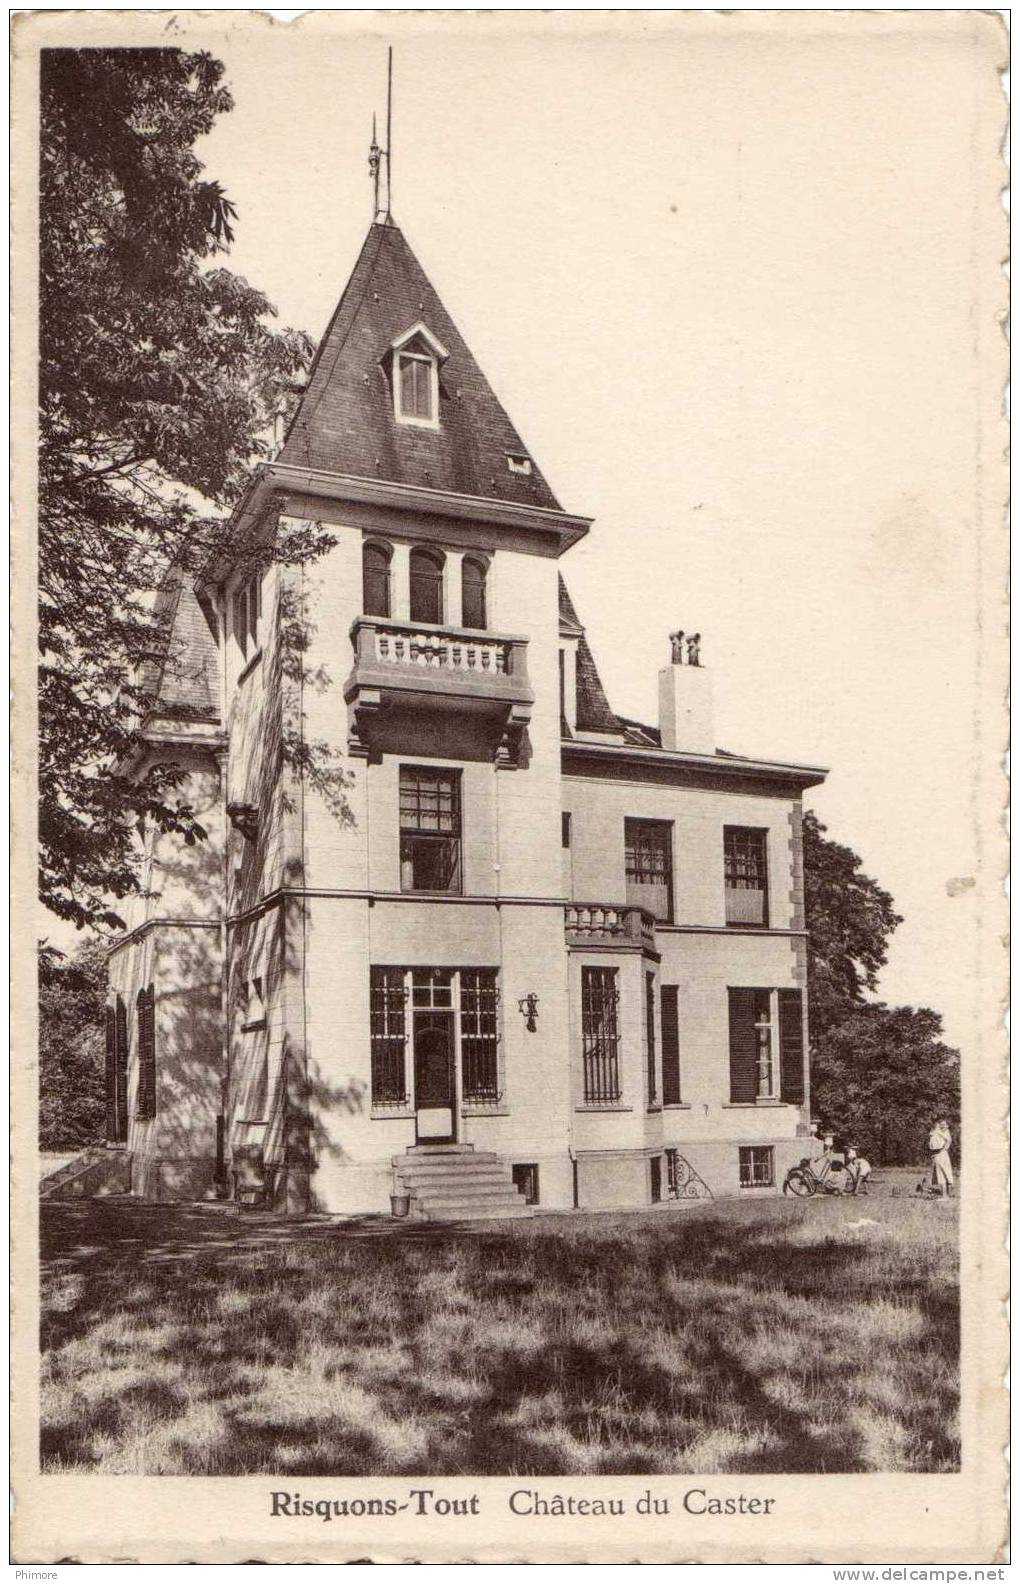 Caster-chateau-Mouscron-Screpel.jpg